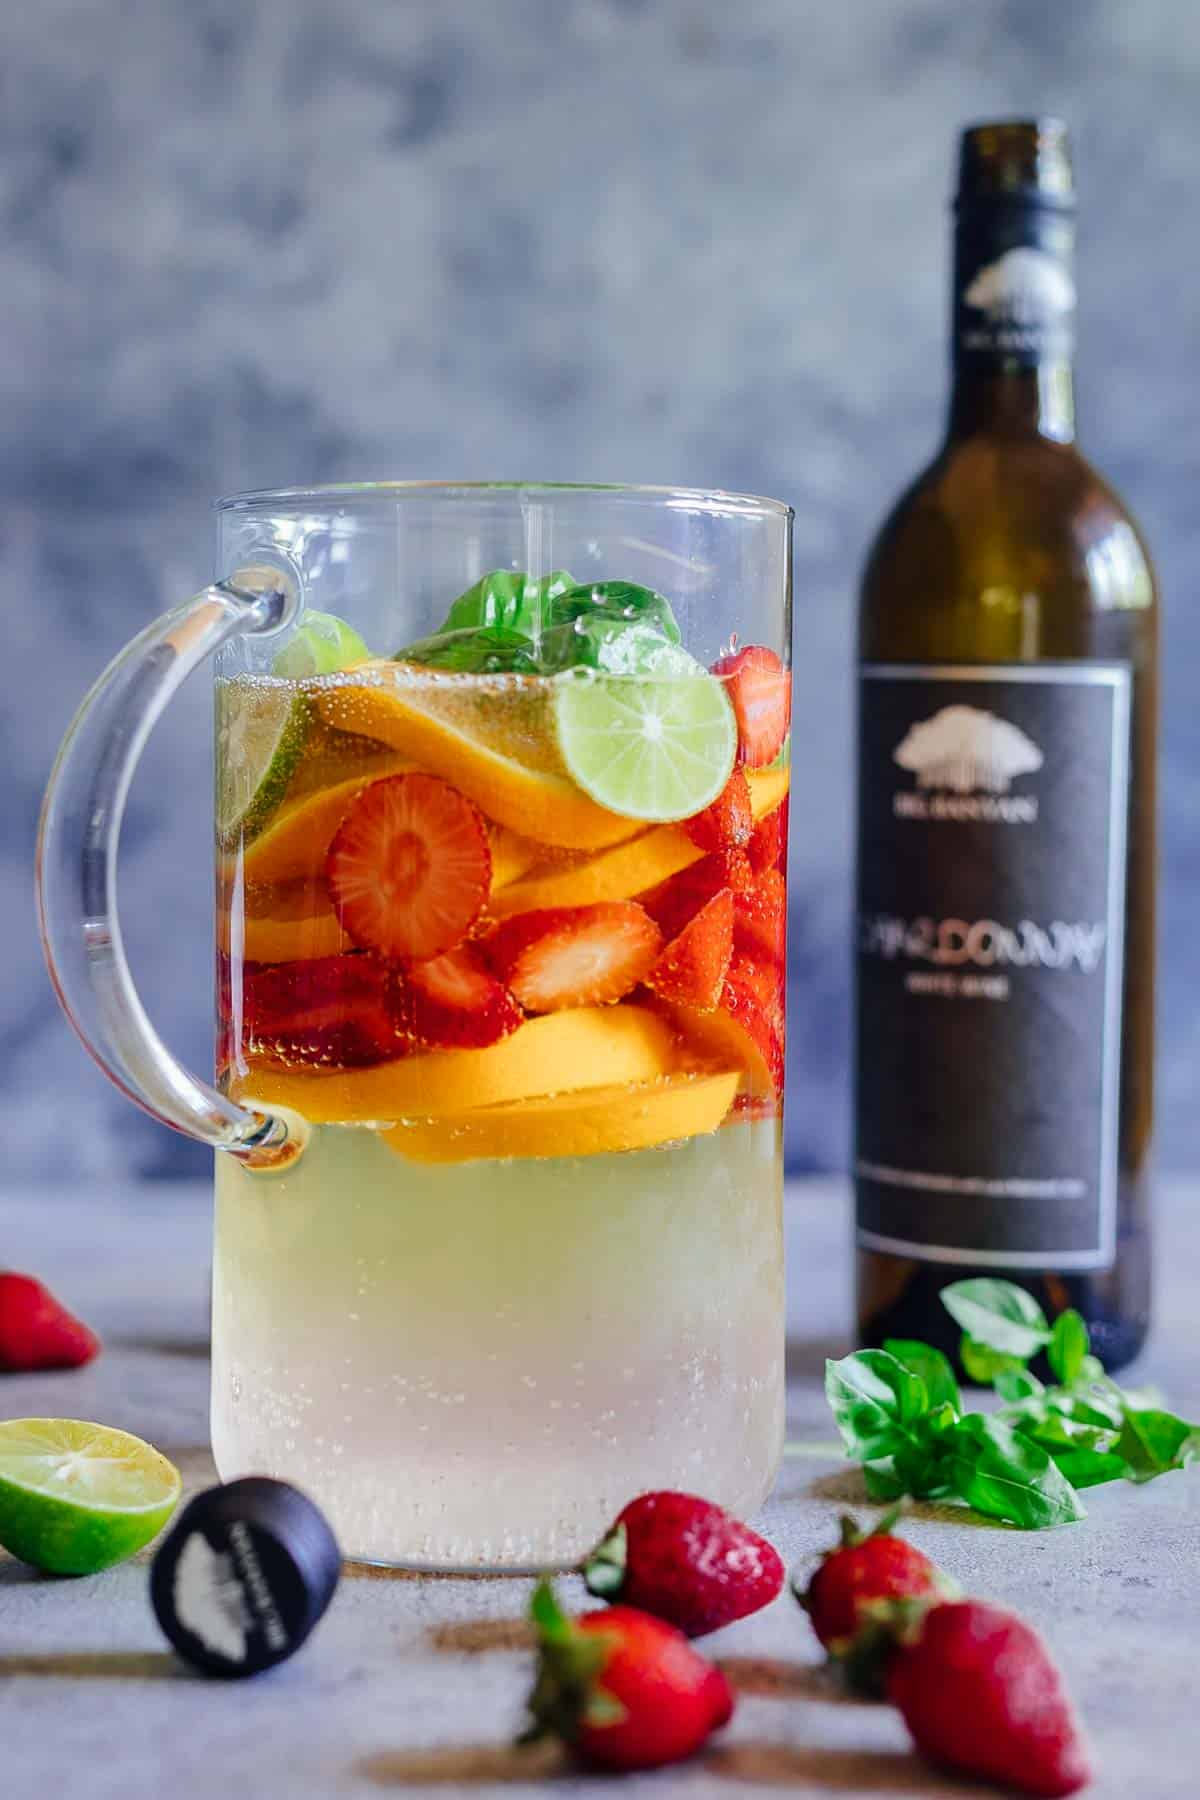 A pitcher of strawberry orange white wine sangria with a bottle of chardonnay in the background